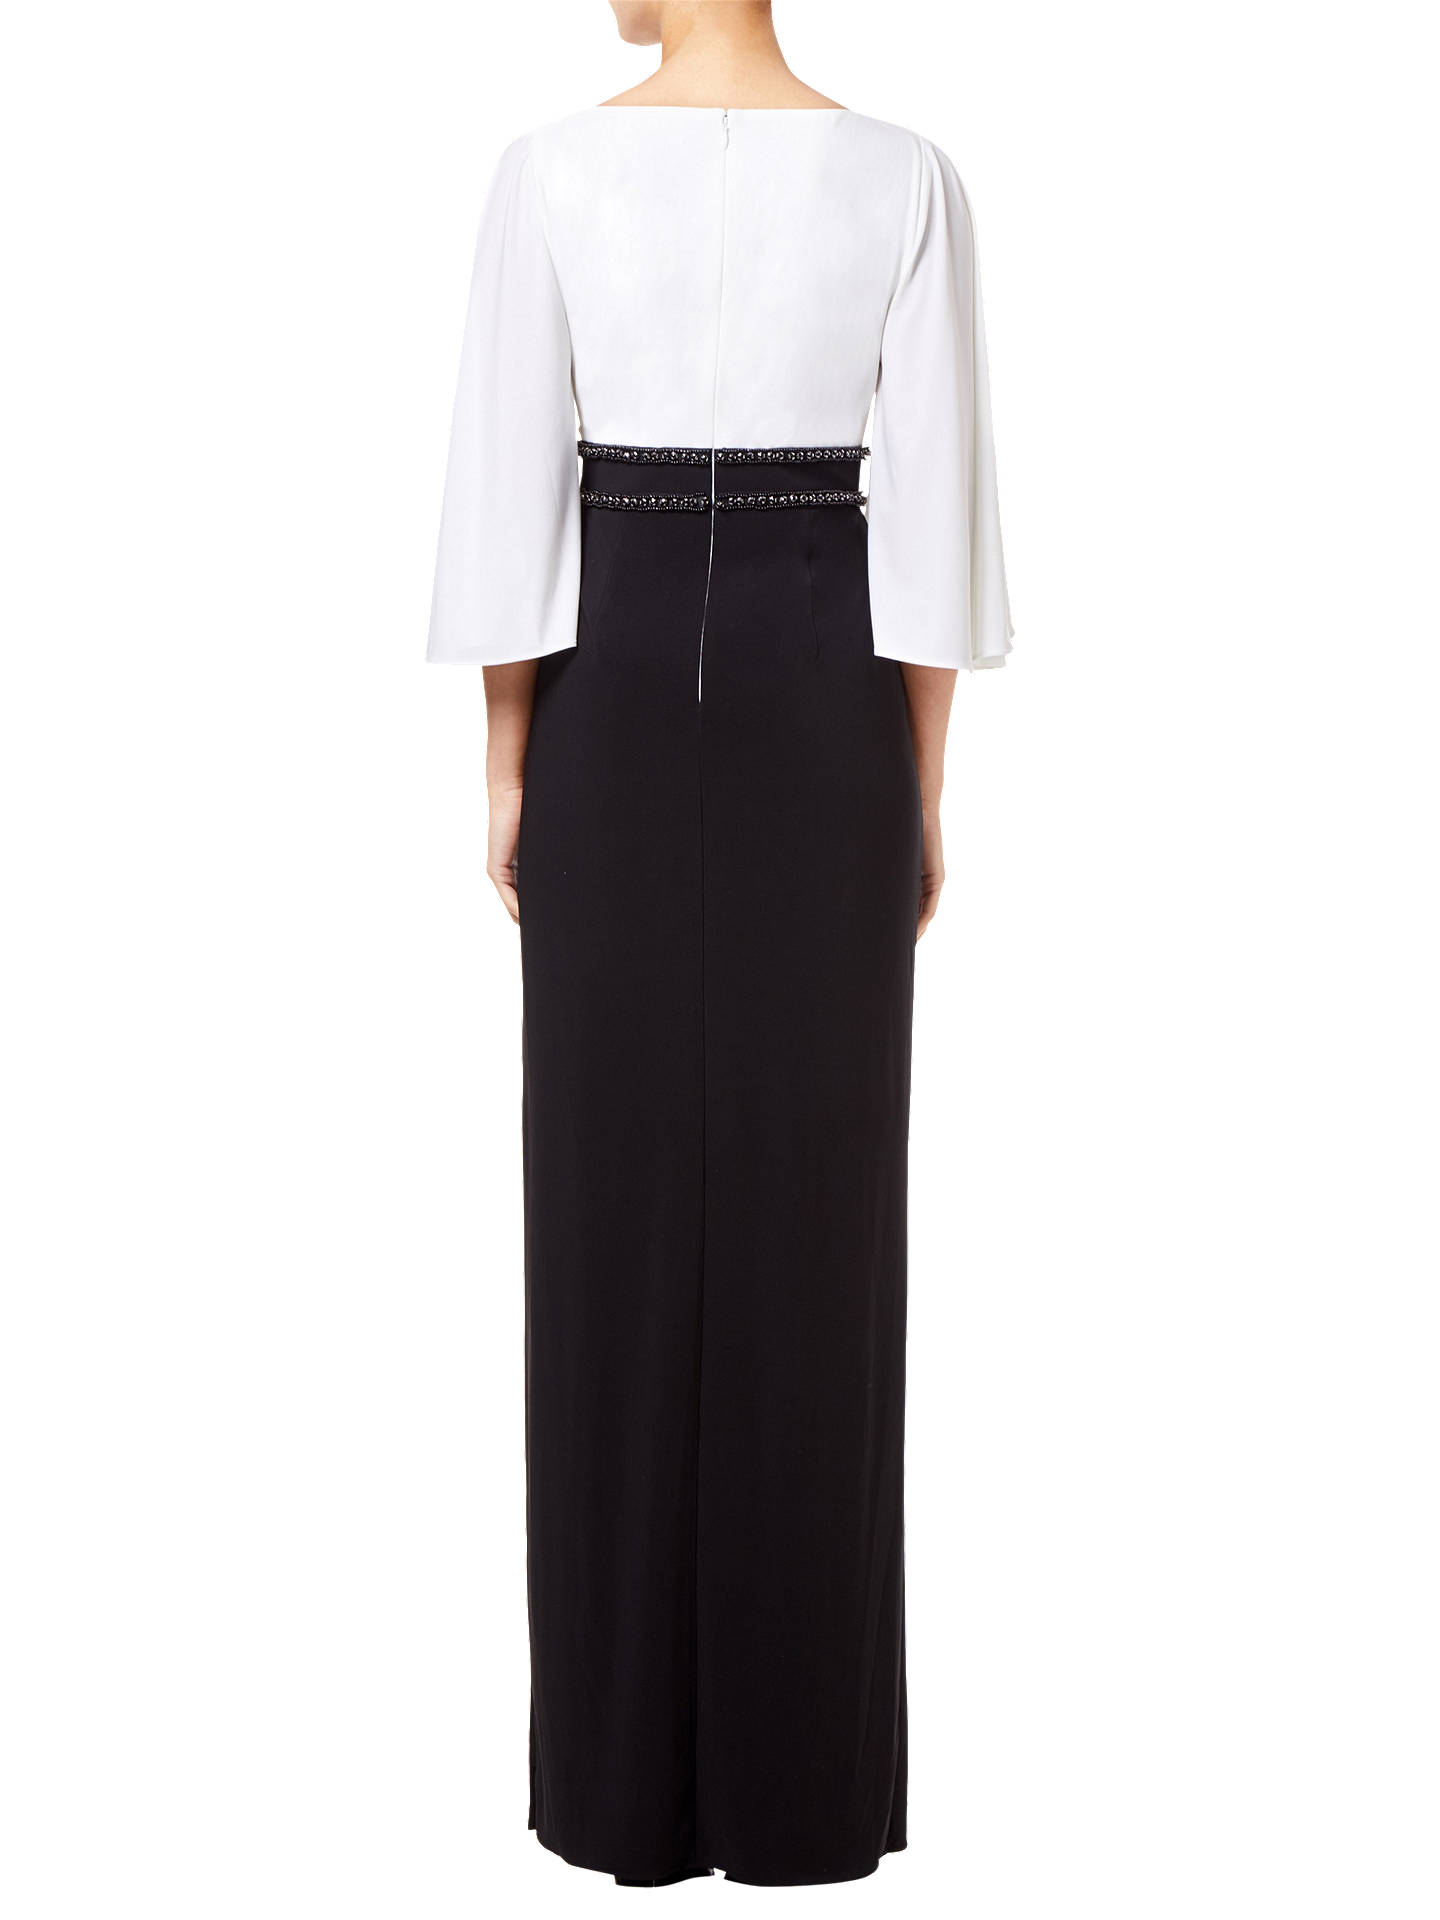 BuyAdrianna Papell Two-Tone Angel Sleeve Long Jersey Dress, Ivory/Black, 18 Online at johnlewis.com